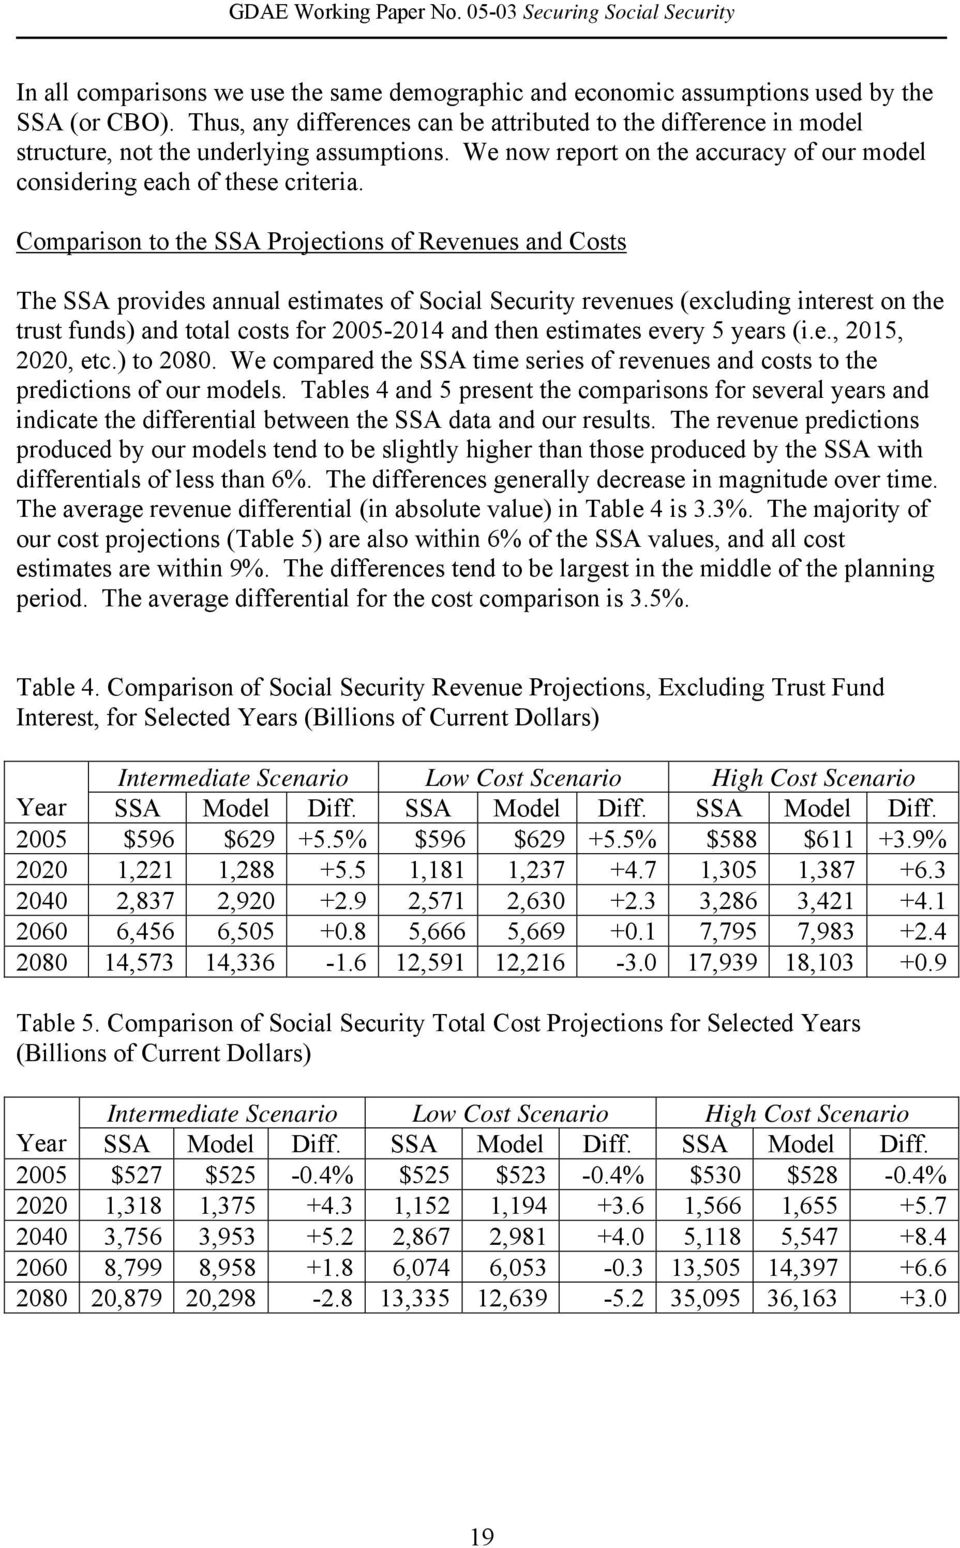 Comparison to the SSA Projections of Revenues and Costs The SSA provides annual estimates of Social Security revenues (excluding interest on the trust funds) and total costs for 2005-2014 and then